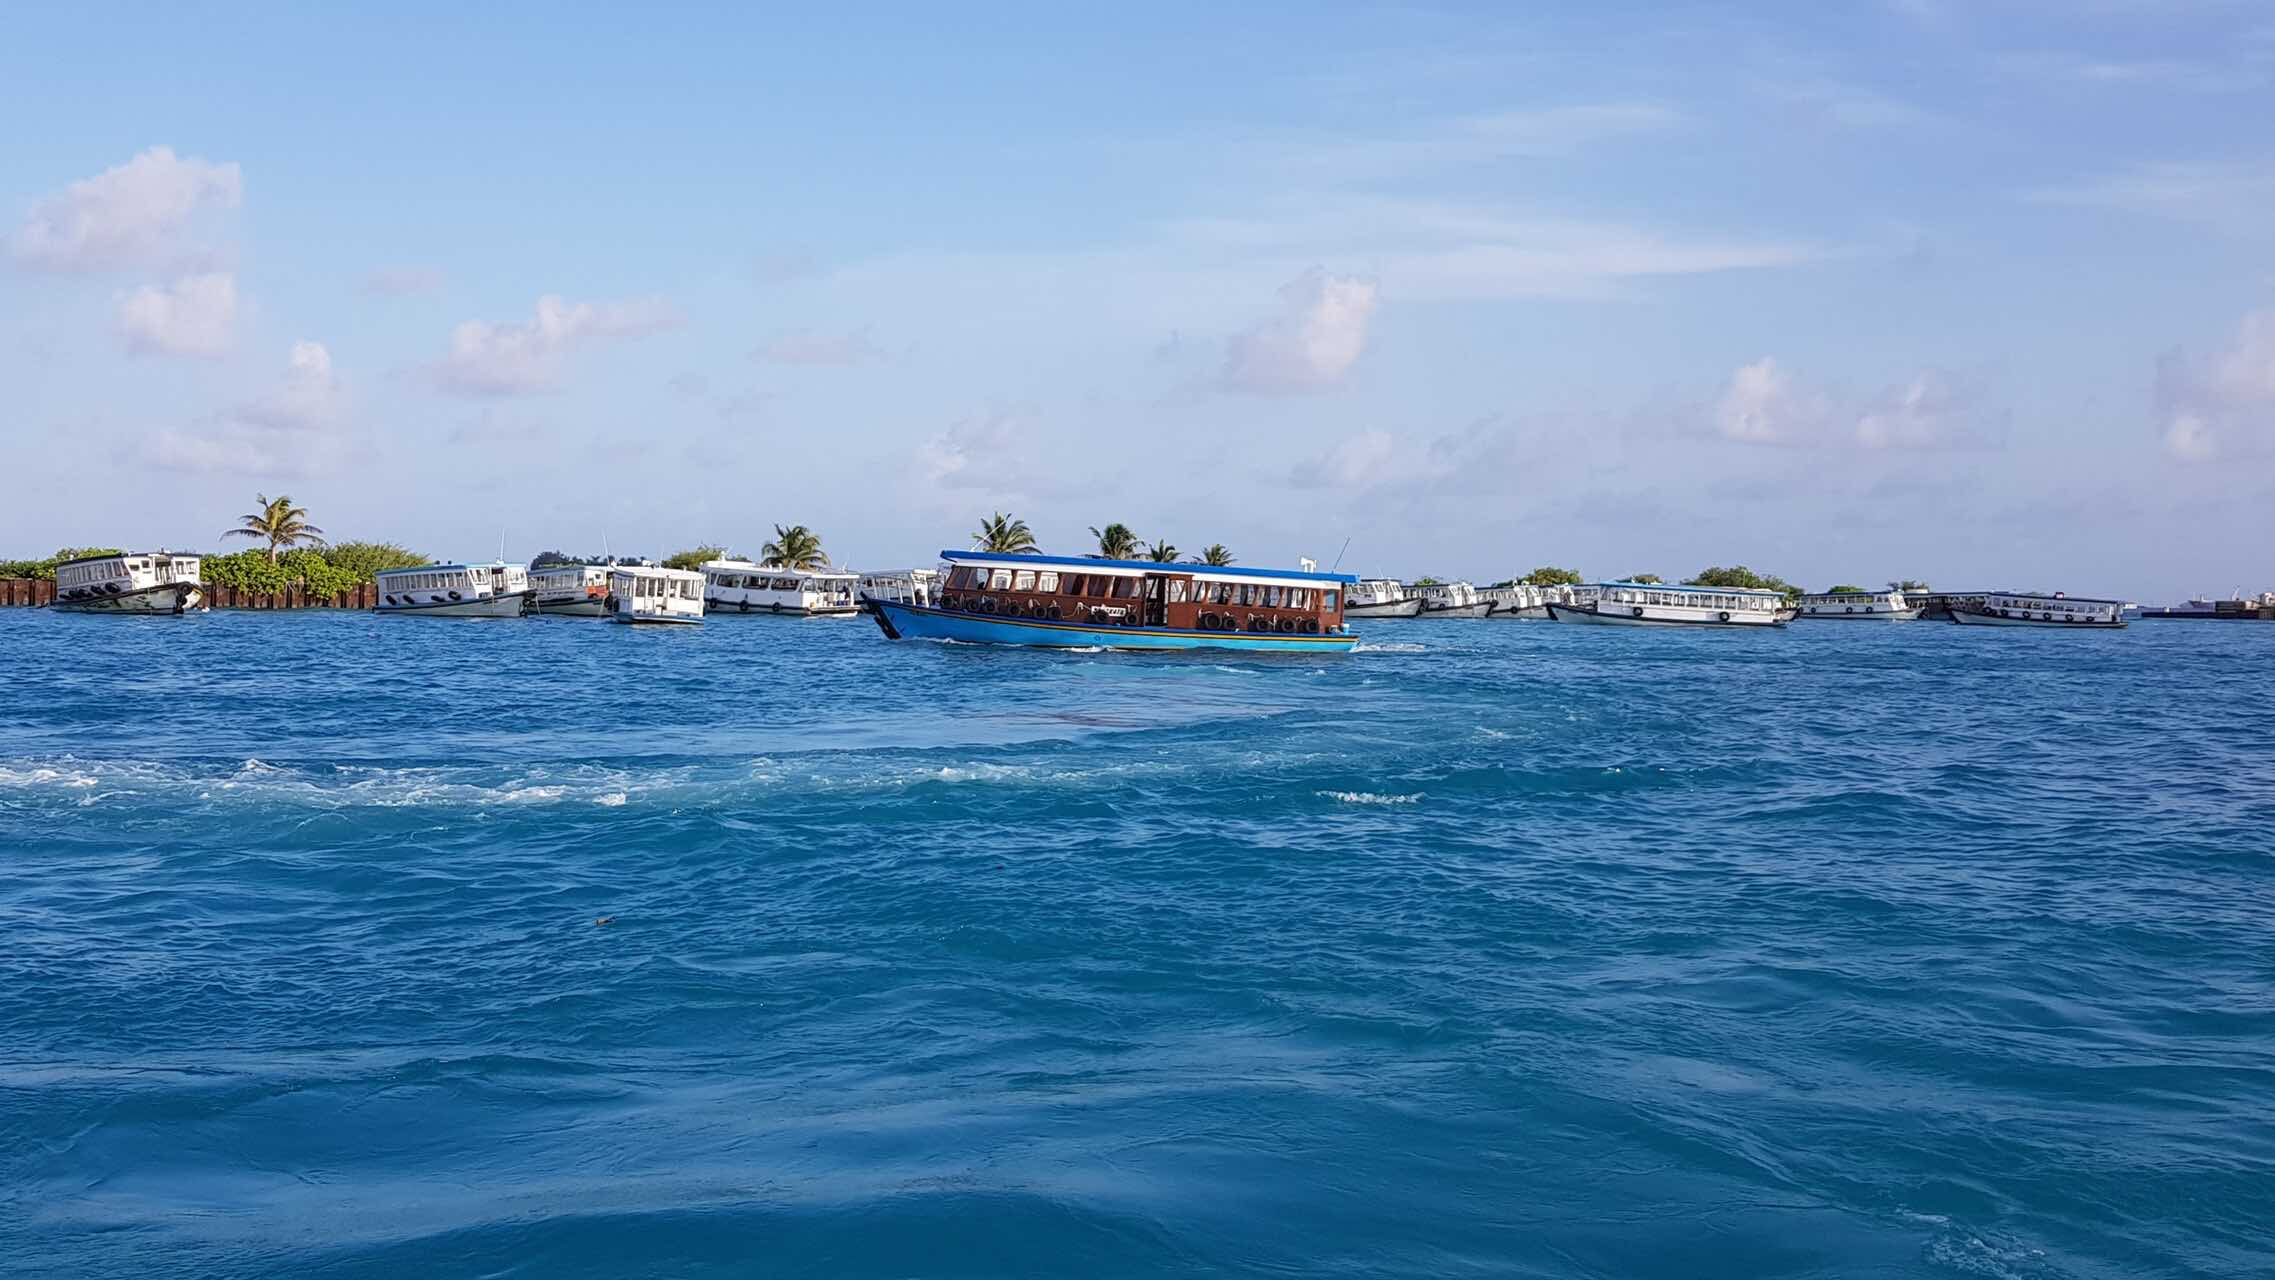 maldives-oblu-by-atmosphere-at-helengeli-dhoni-boat-water-holiday-review-feedback-invite-to-paradise-quentin-kate-hulm.jpg